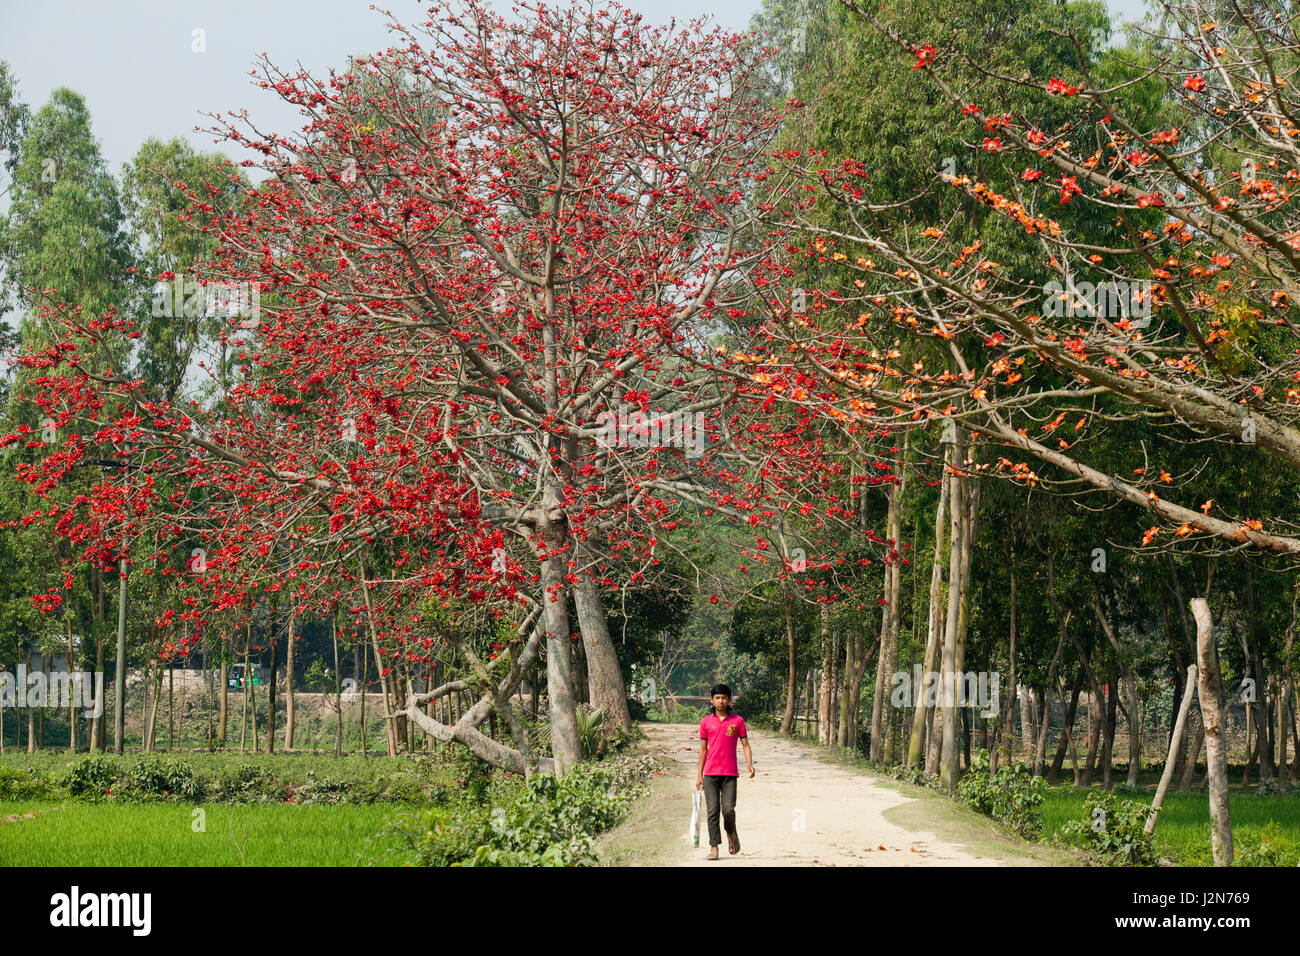 Red silk cotton flower trees also known as bombax ceiba shimul both red silk cotton flower trees also known as bombax ceiba shimul both sides of a road dhaka bangladesh mightylinksfo